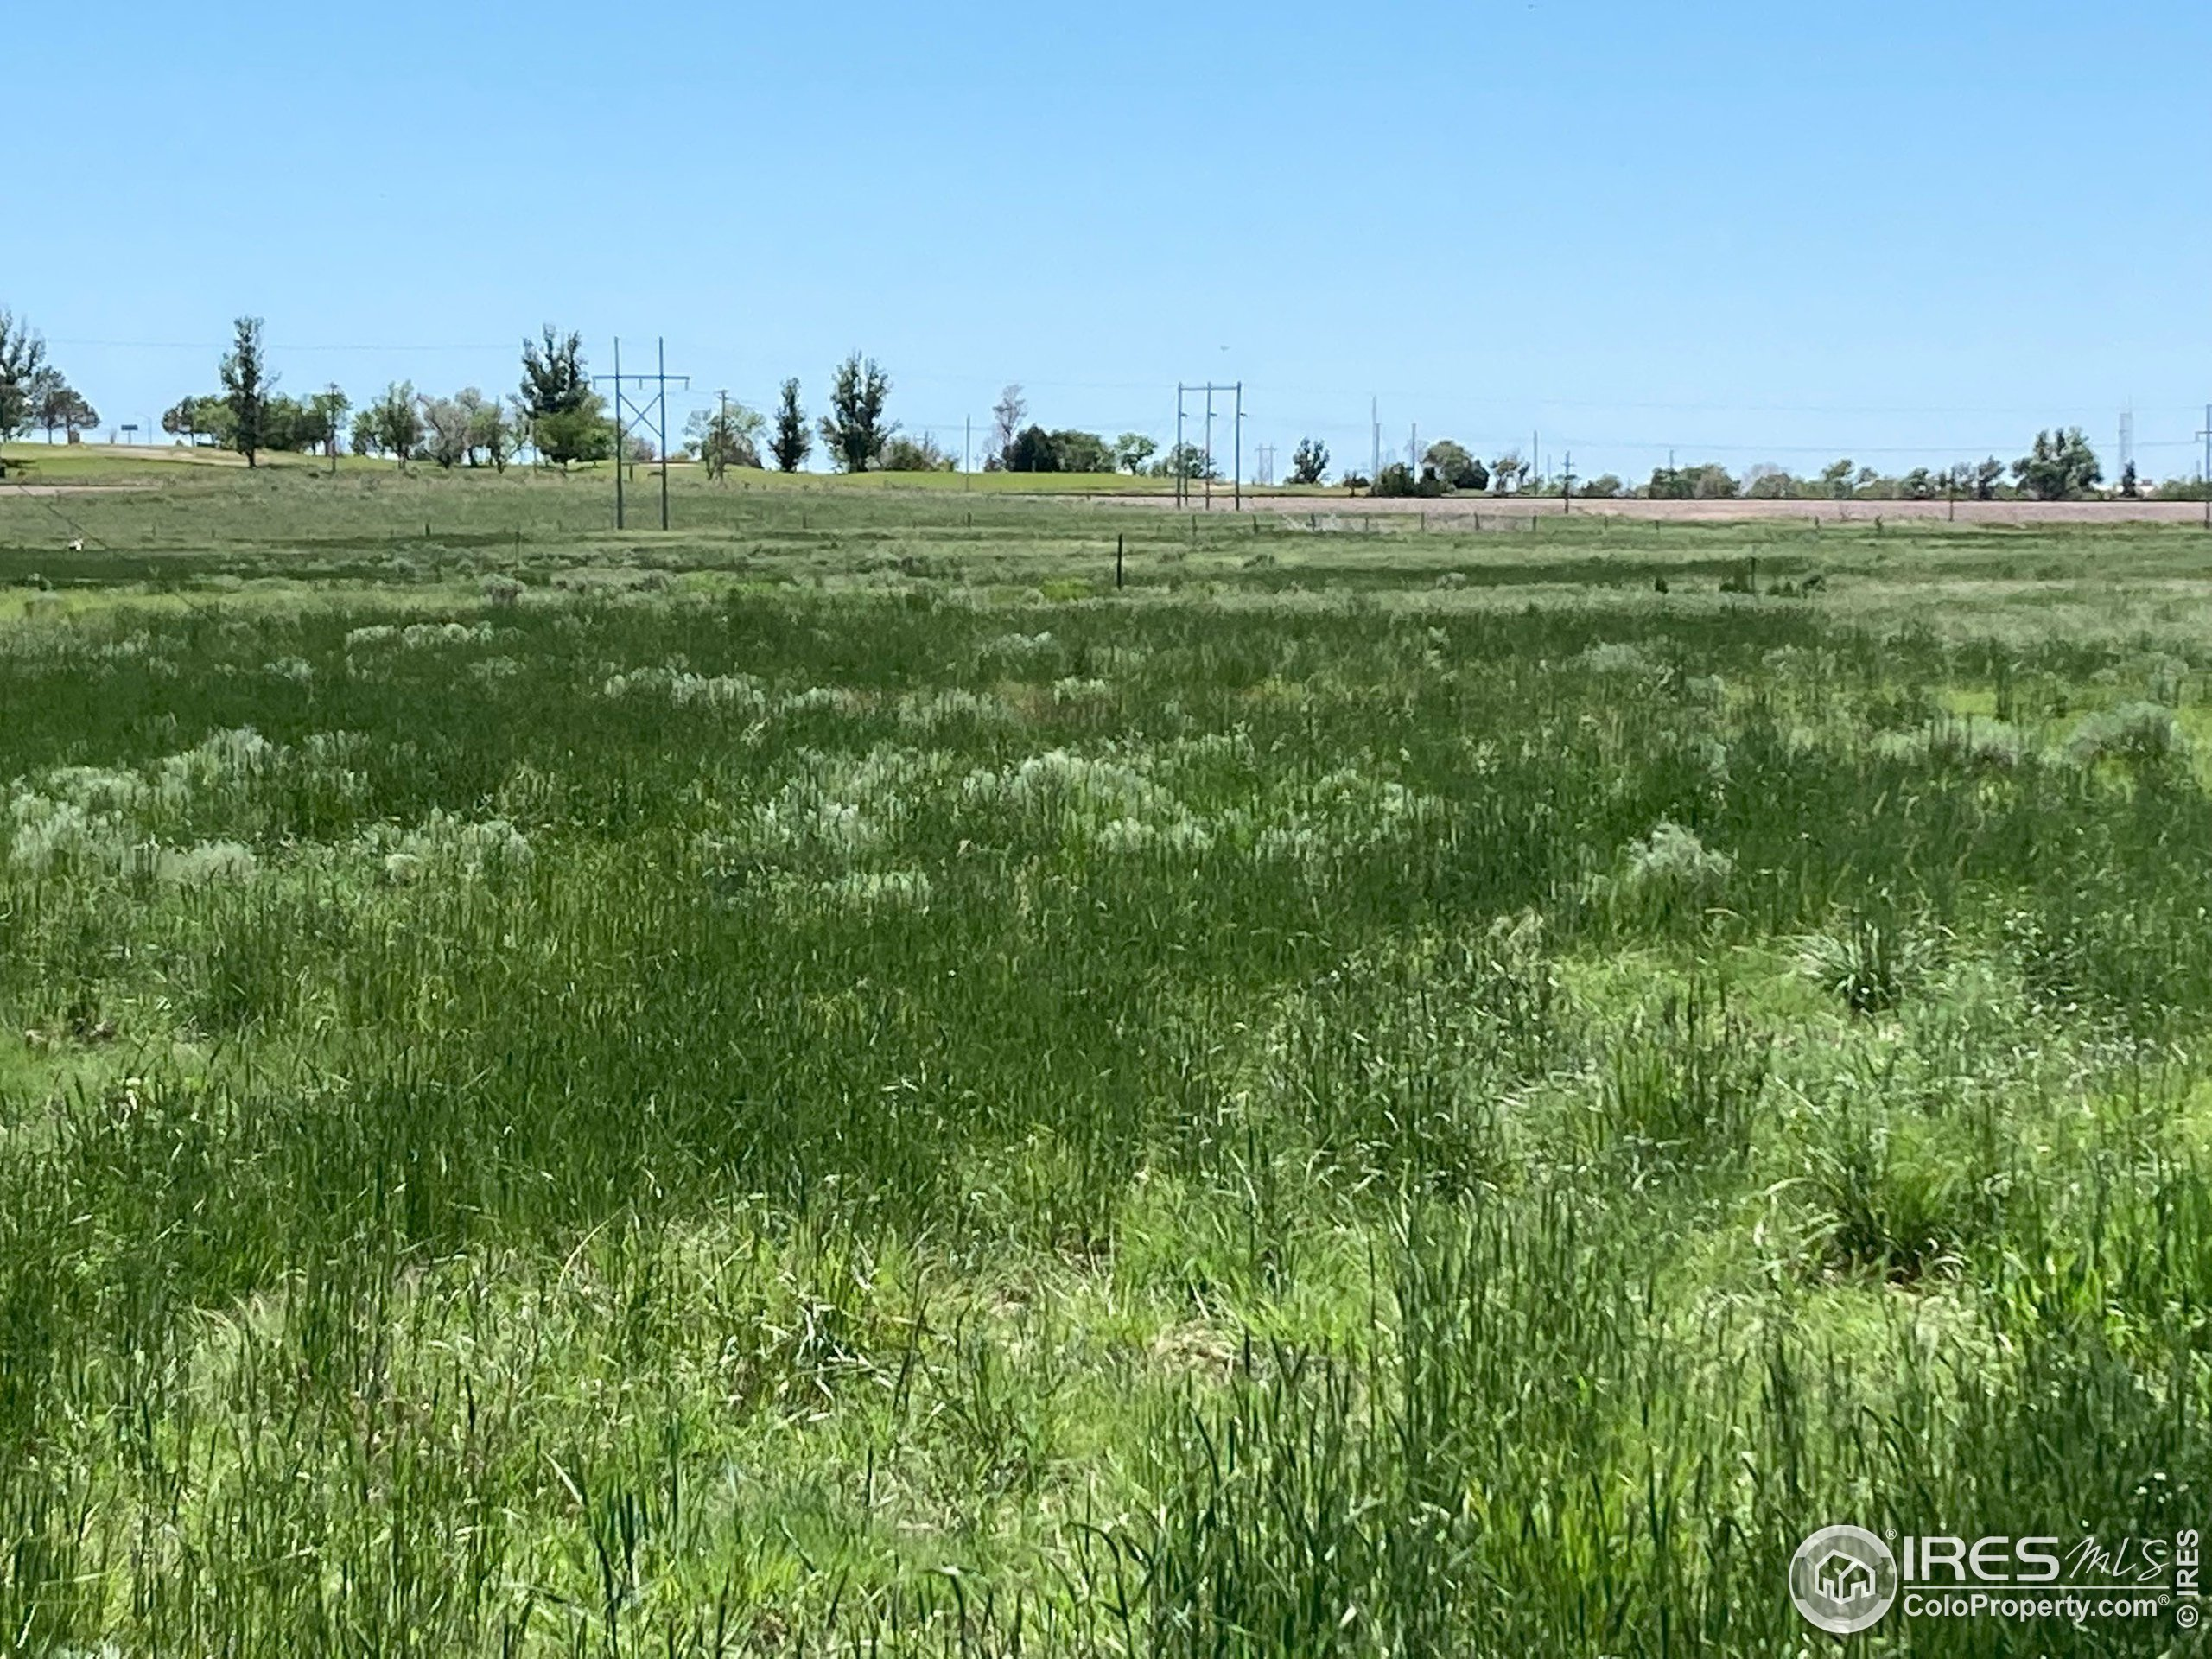 View 35 acres May